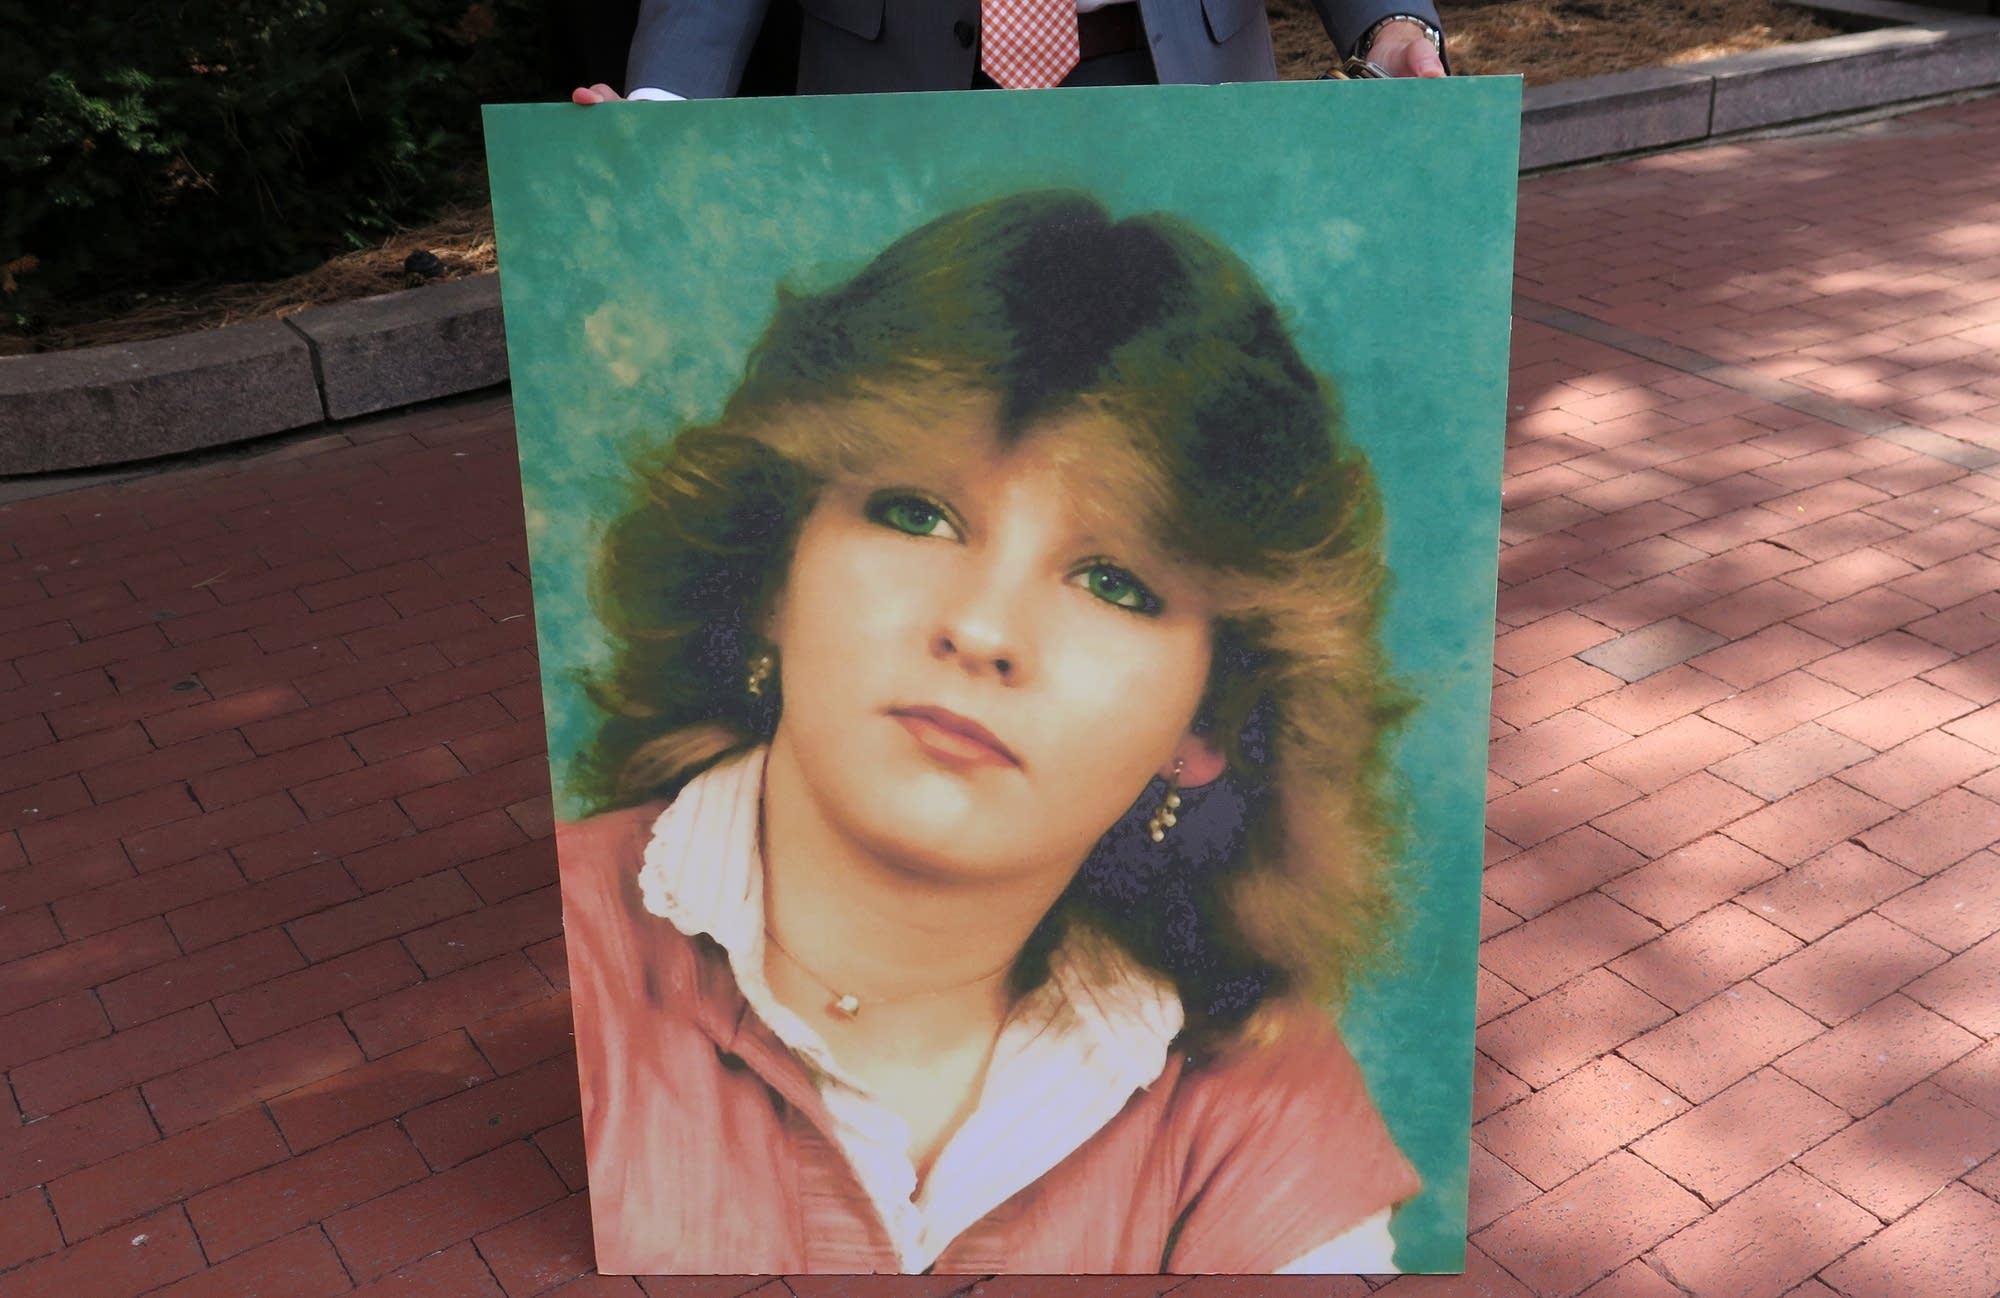 Lorri Mesedahl, 17, was raped and killed on April 2, 1983 in Minneapolis.